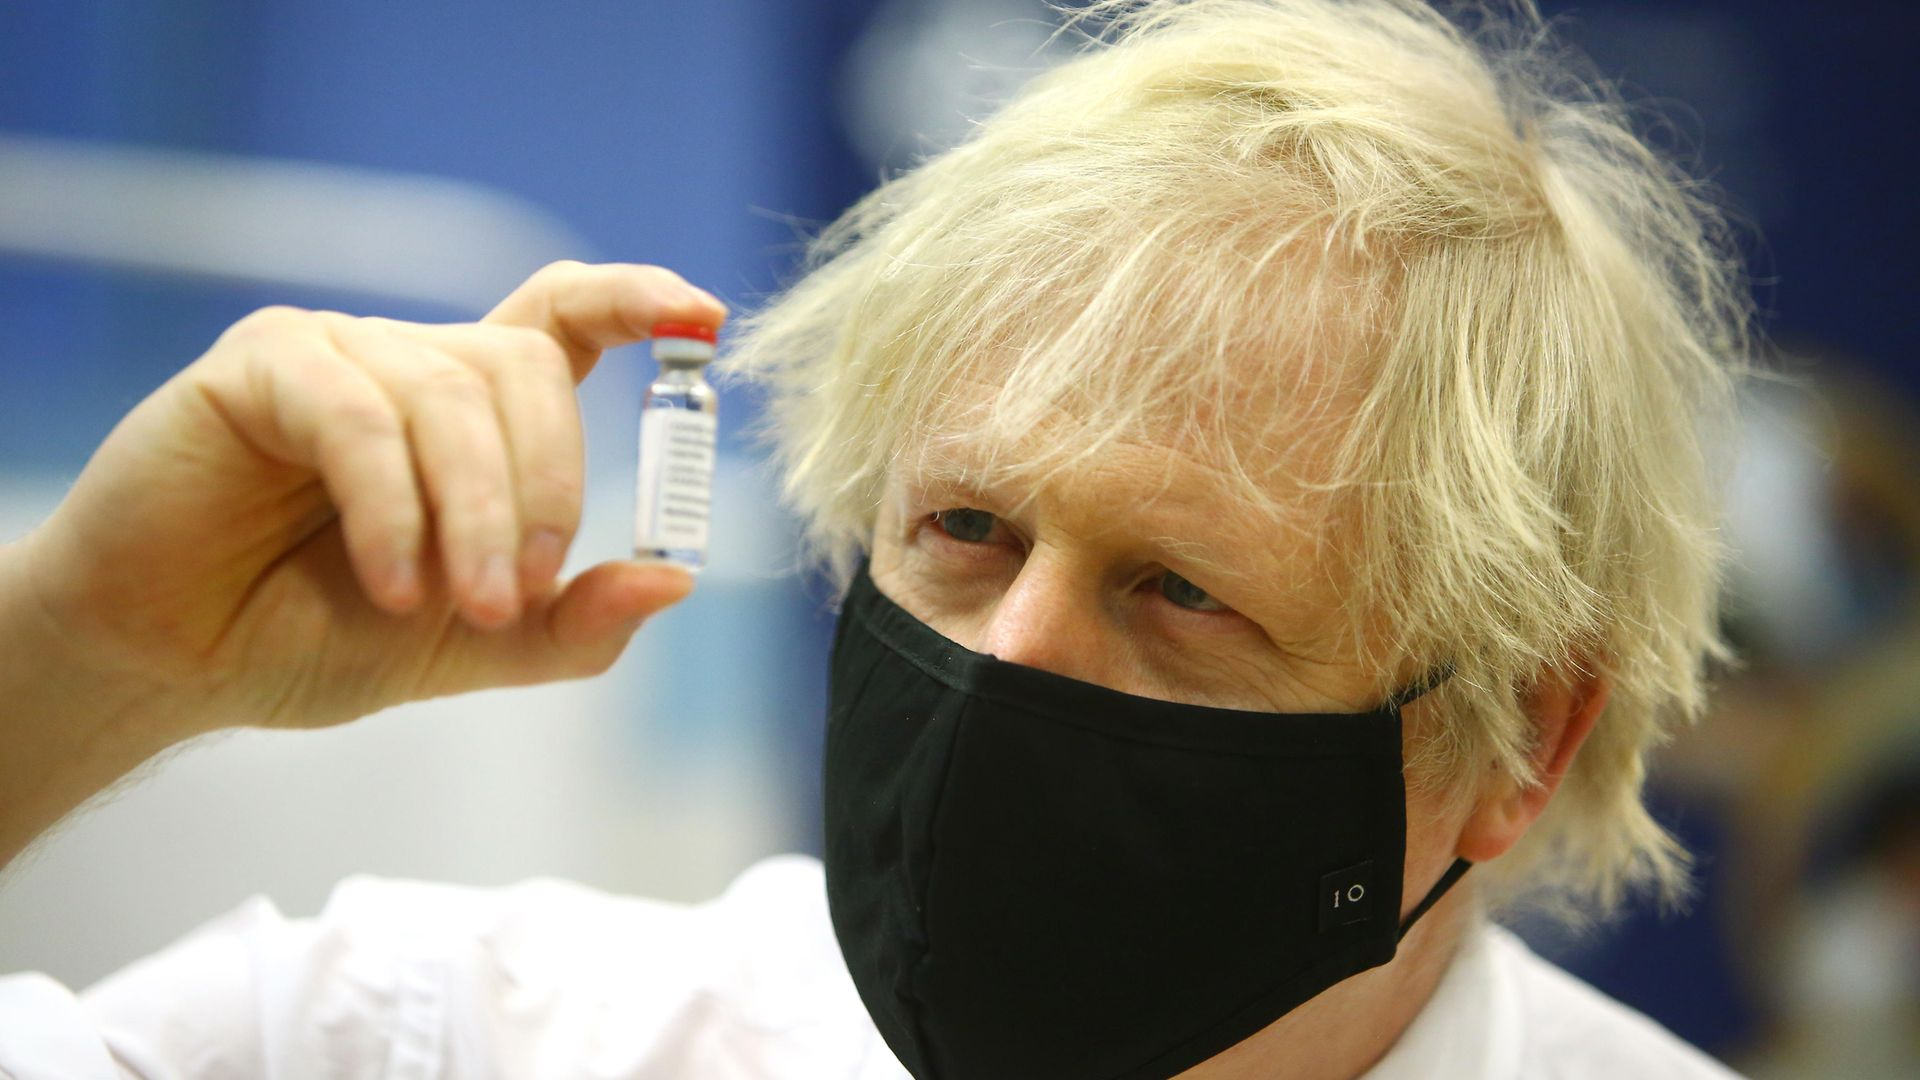 Prime minister Boris Johnson holding a vial of the Oxford/Astra Zeneca Covid-19 vaccine as he visits a vaccination centre at Cwmbran Stadium in Cwmbran, south Wales. Picture date: Wednesday February 17, 2021. - Credit: PA